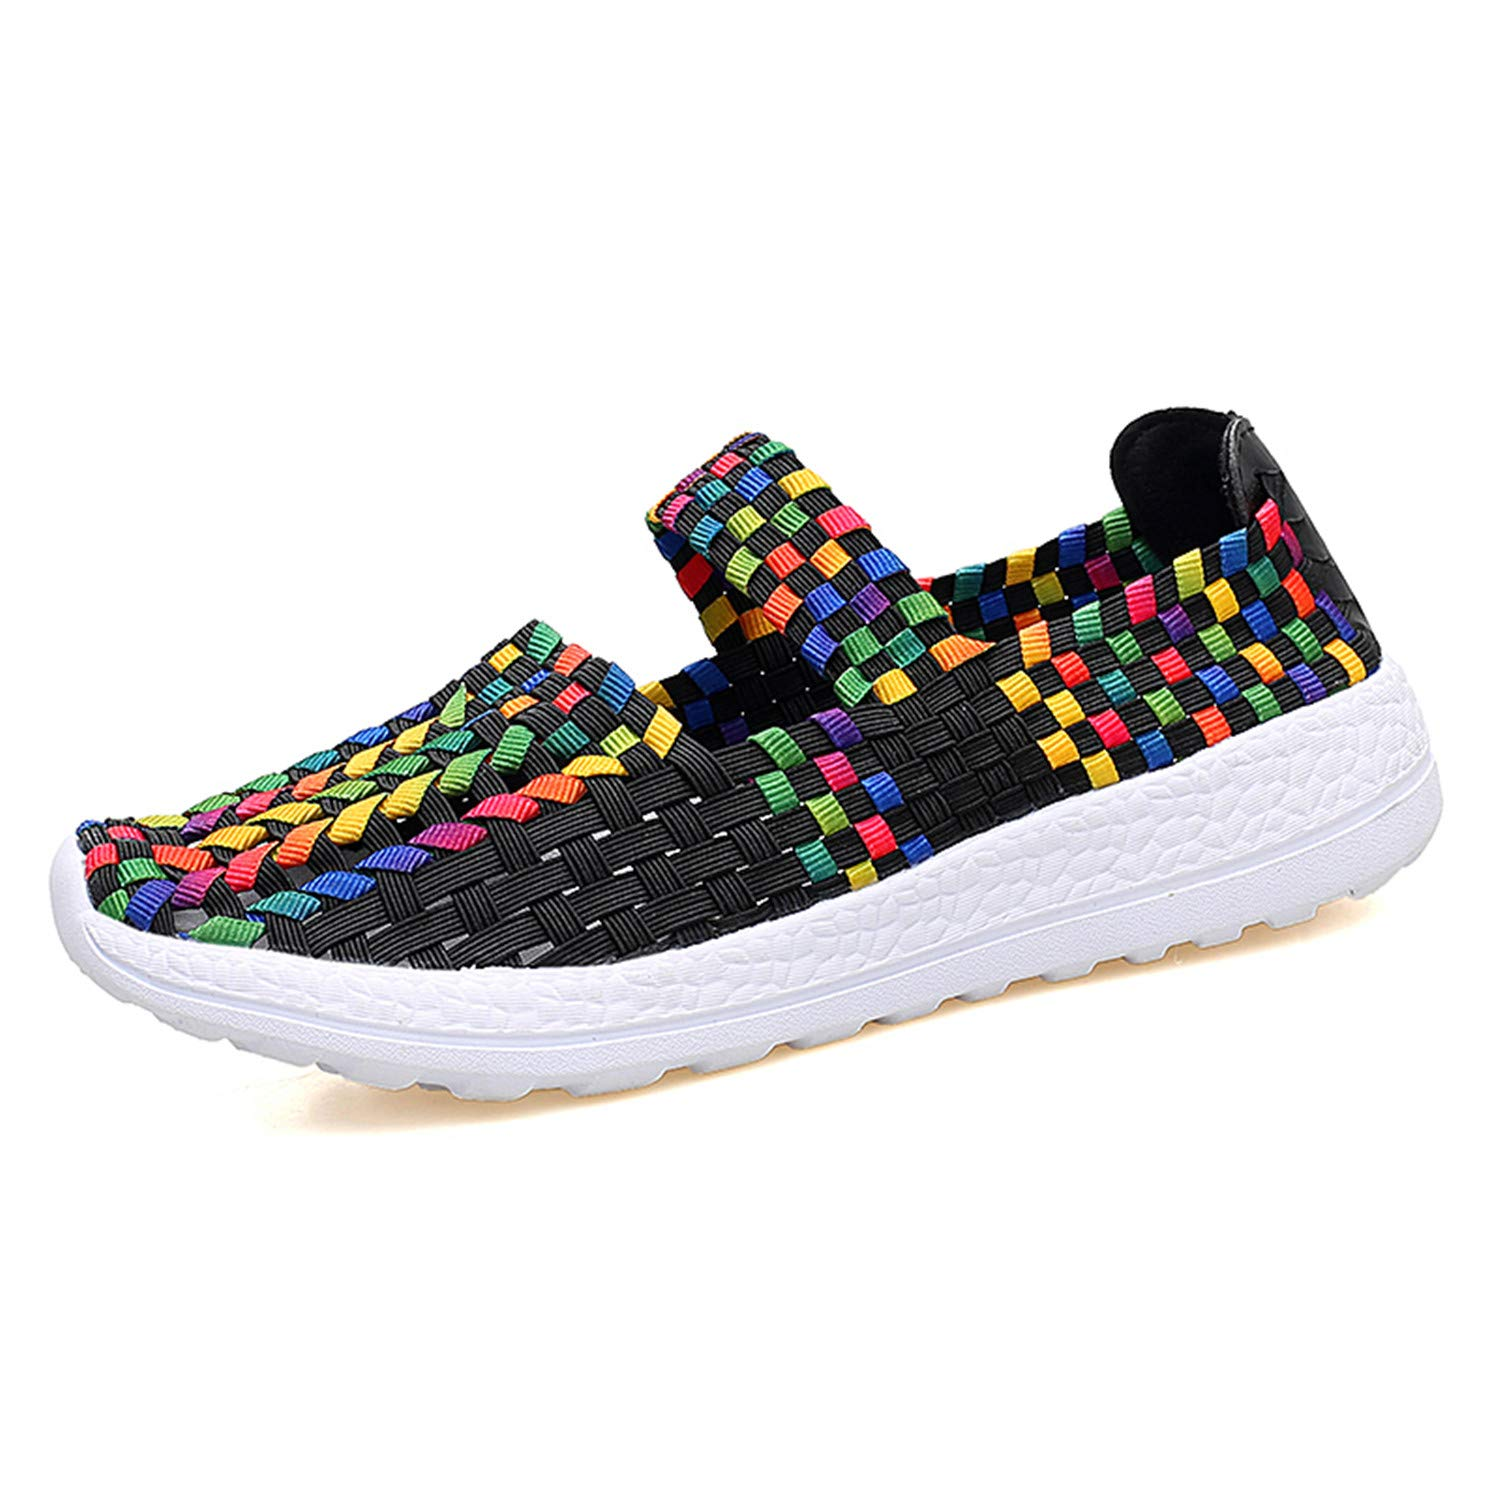 Women Woven Shoes Light Weight Slip On Sandals Walking Sports Loafer Flats Water Shoes